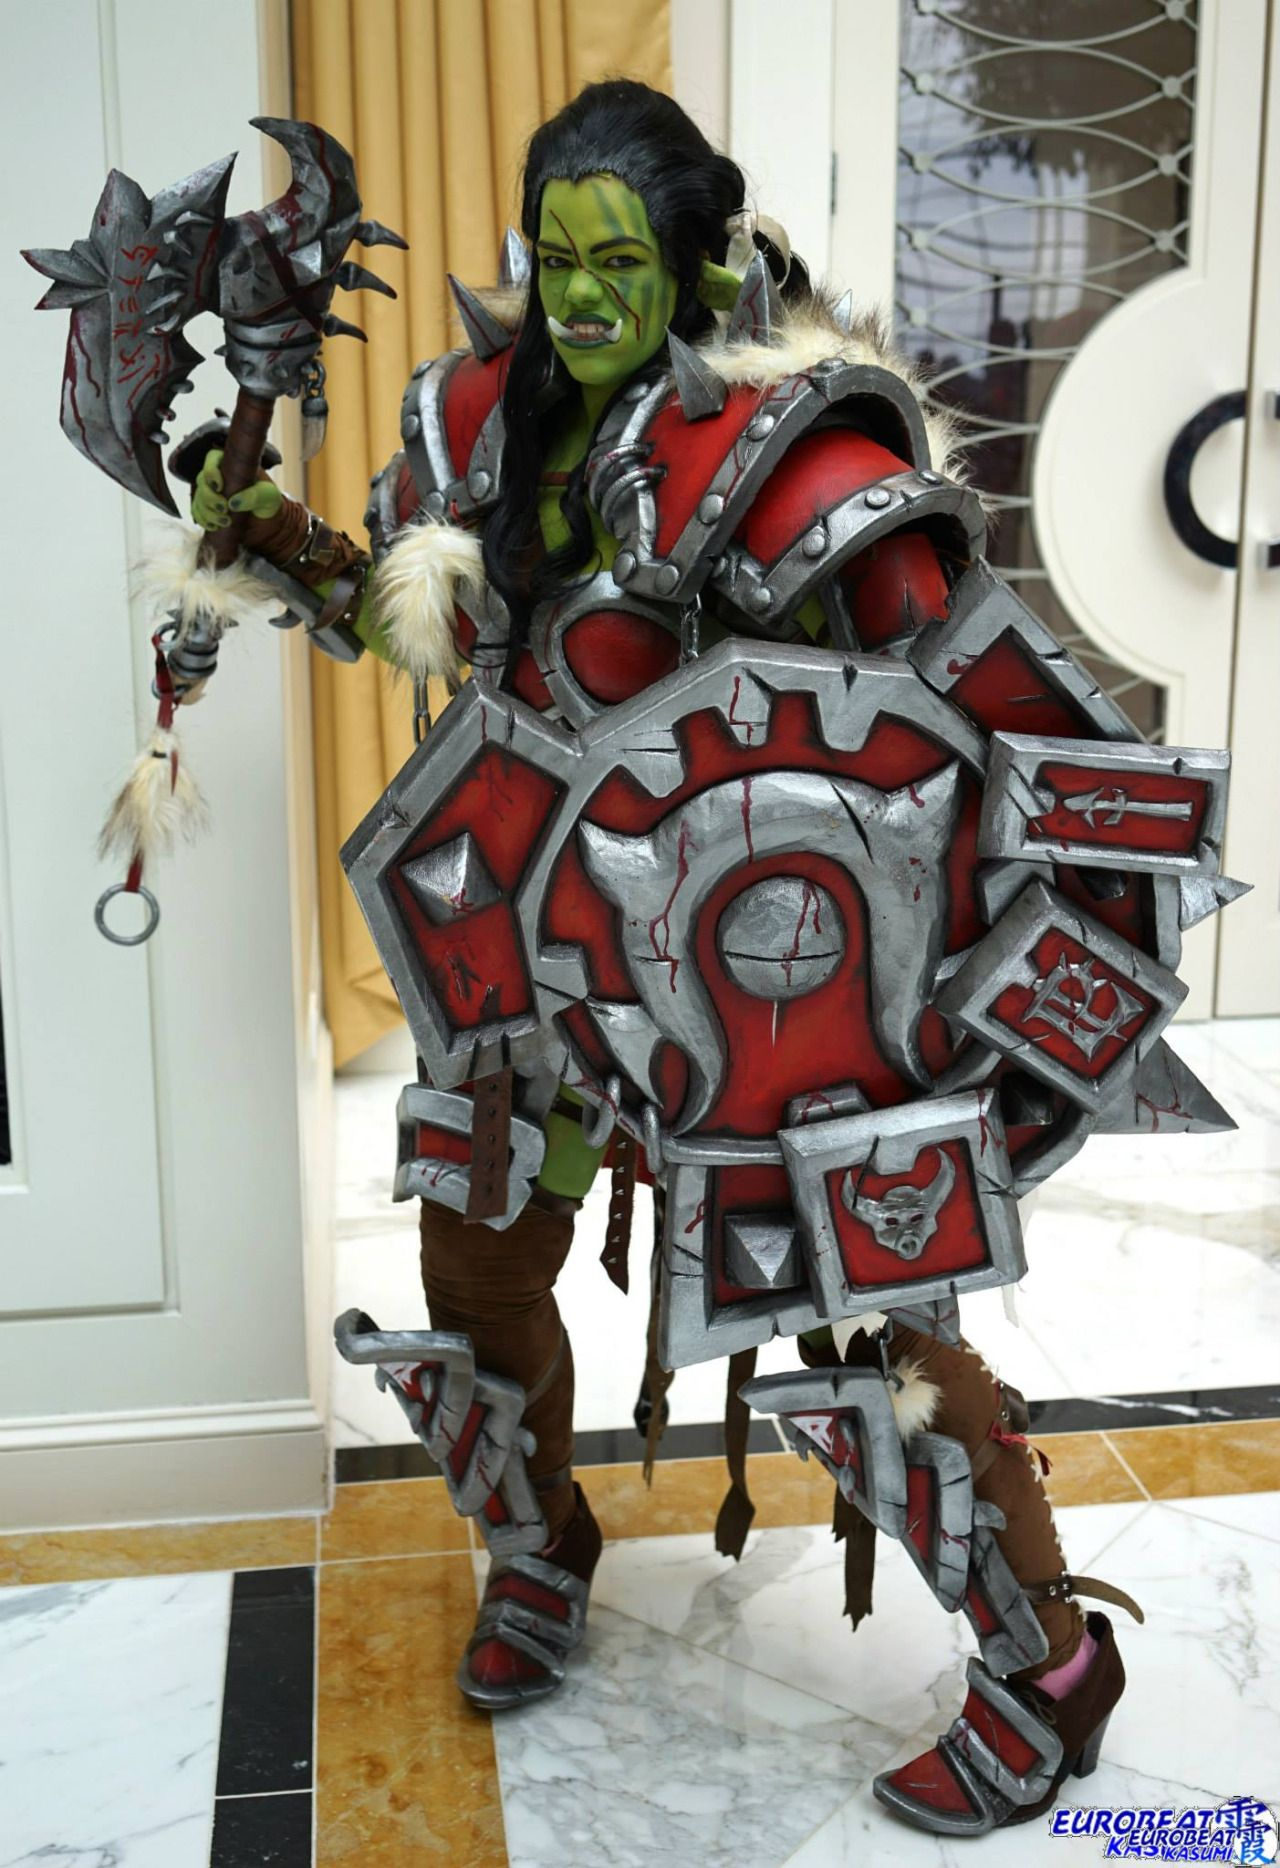 Award winning orc cosplay | Cosplay, Costumes and Awesome cosplay